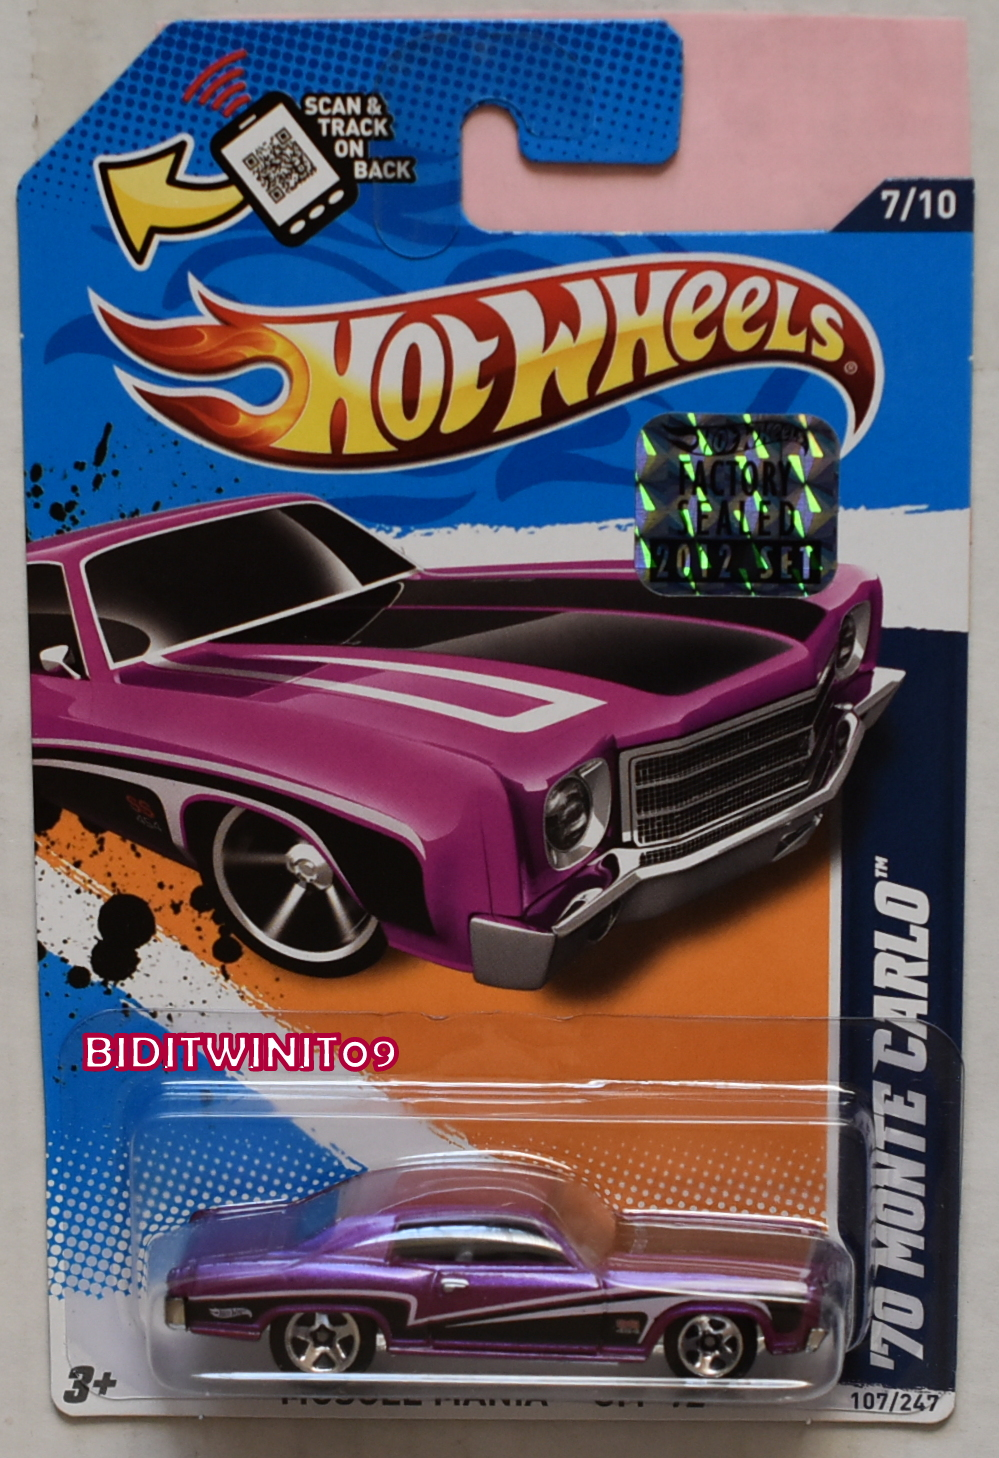 HOT WHEELS 1990 BLUE CARD HOT BIRD #37